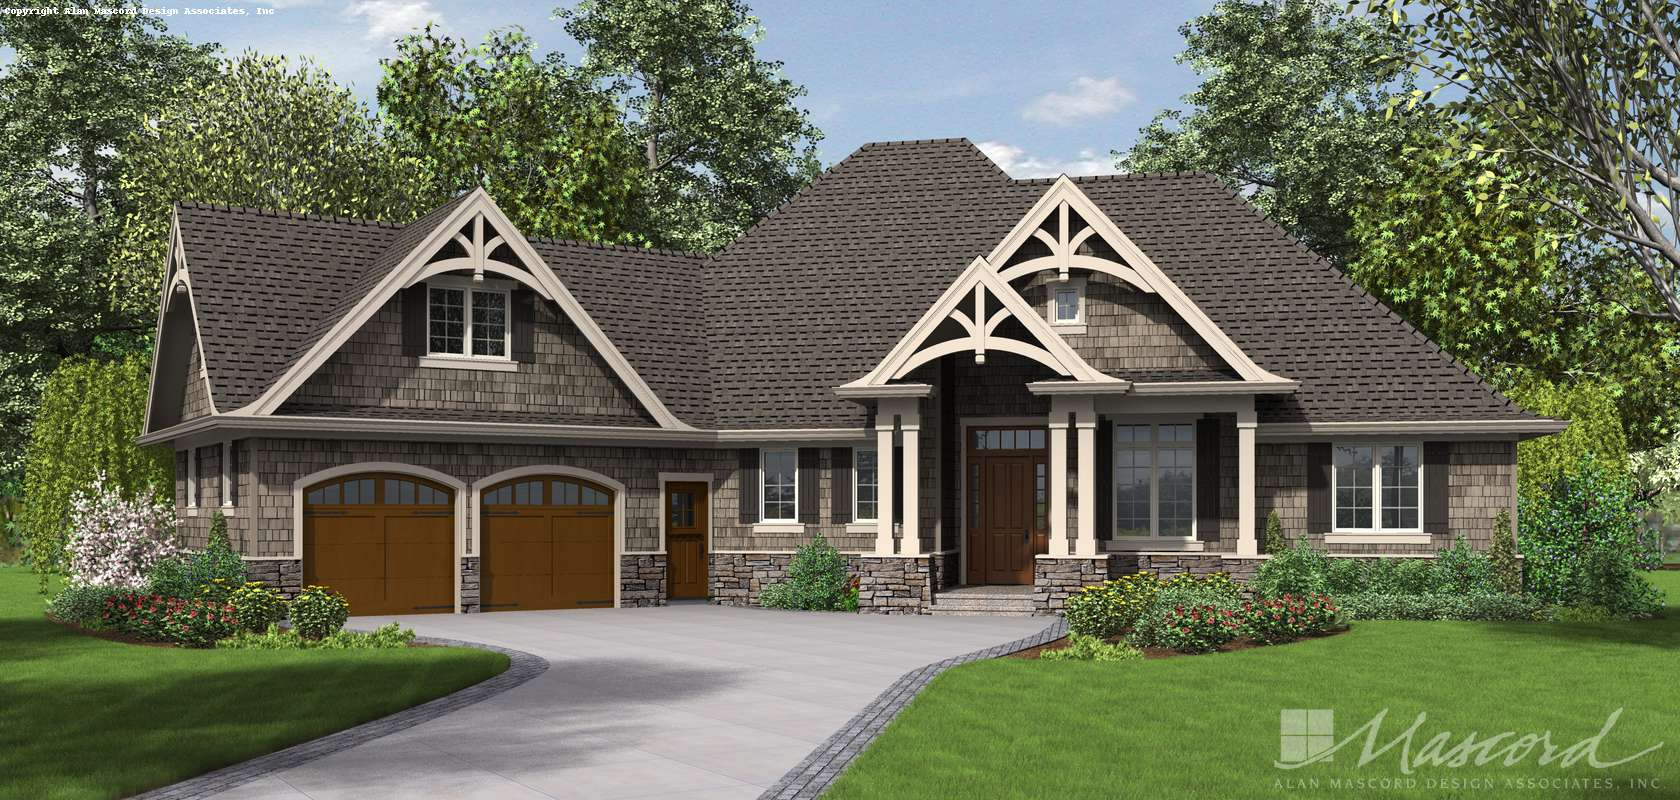 Mascord House Plan 1248: The Ripley